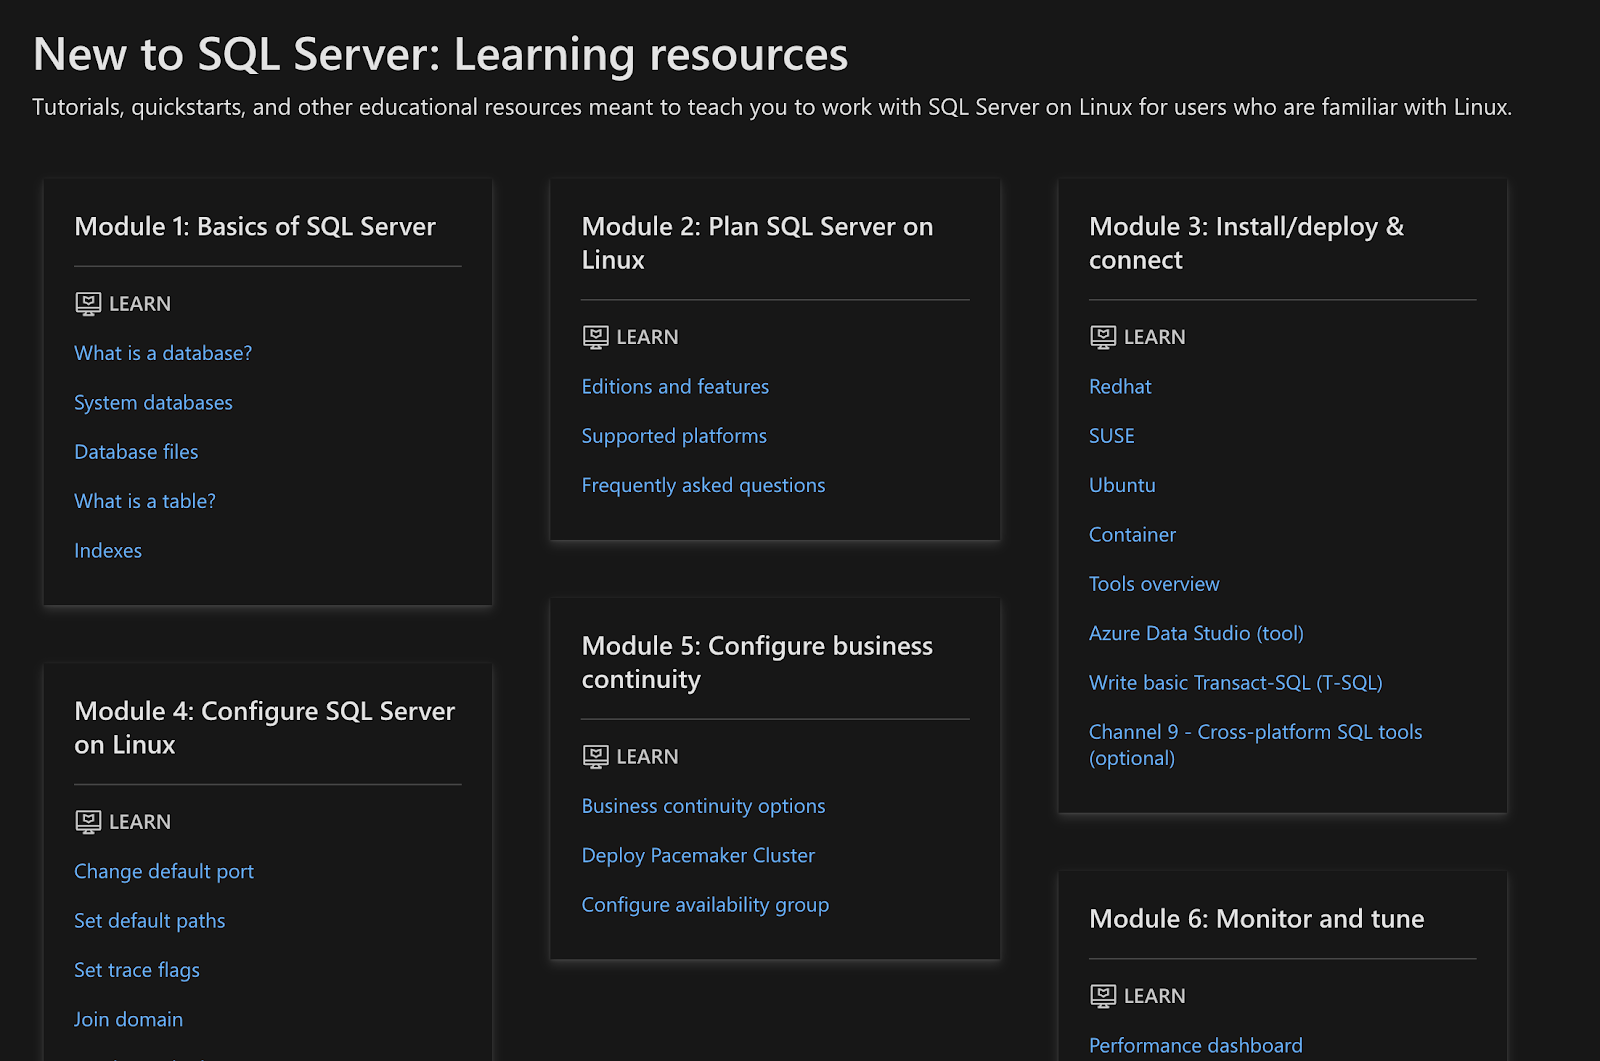 Learn SQL Server: Courses, Resources and Tutorials